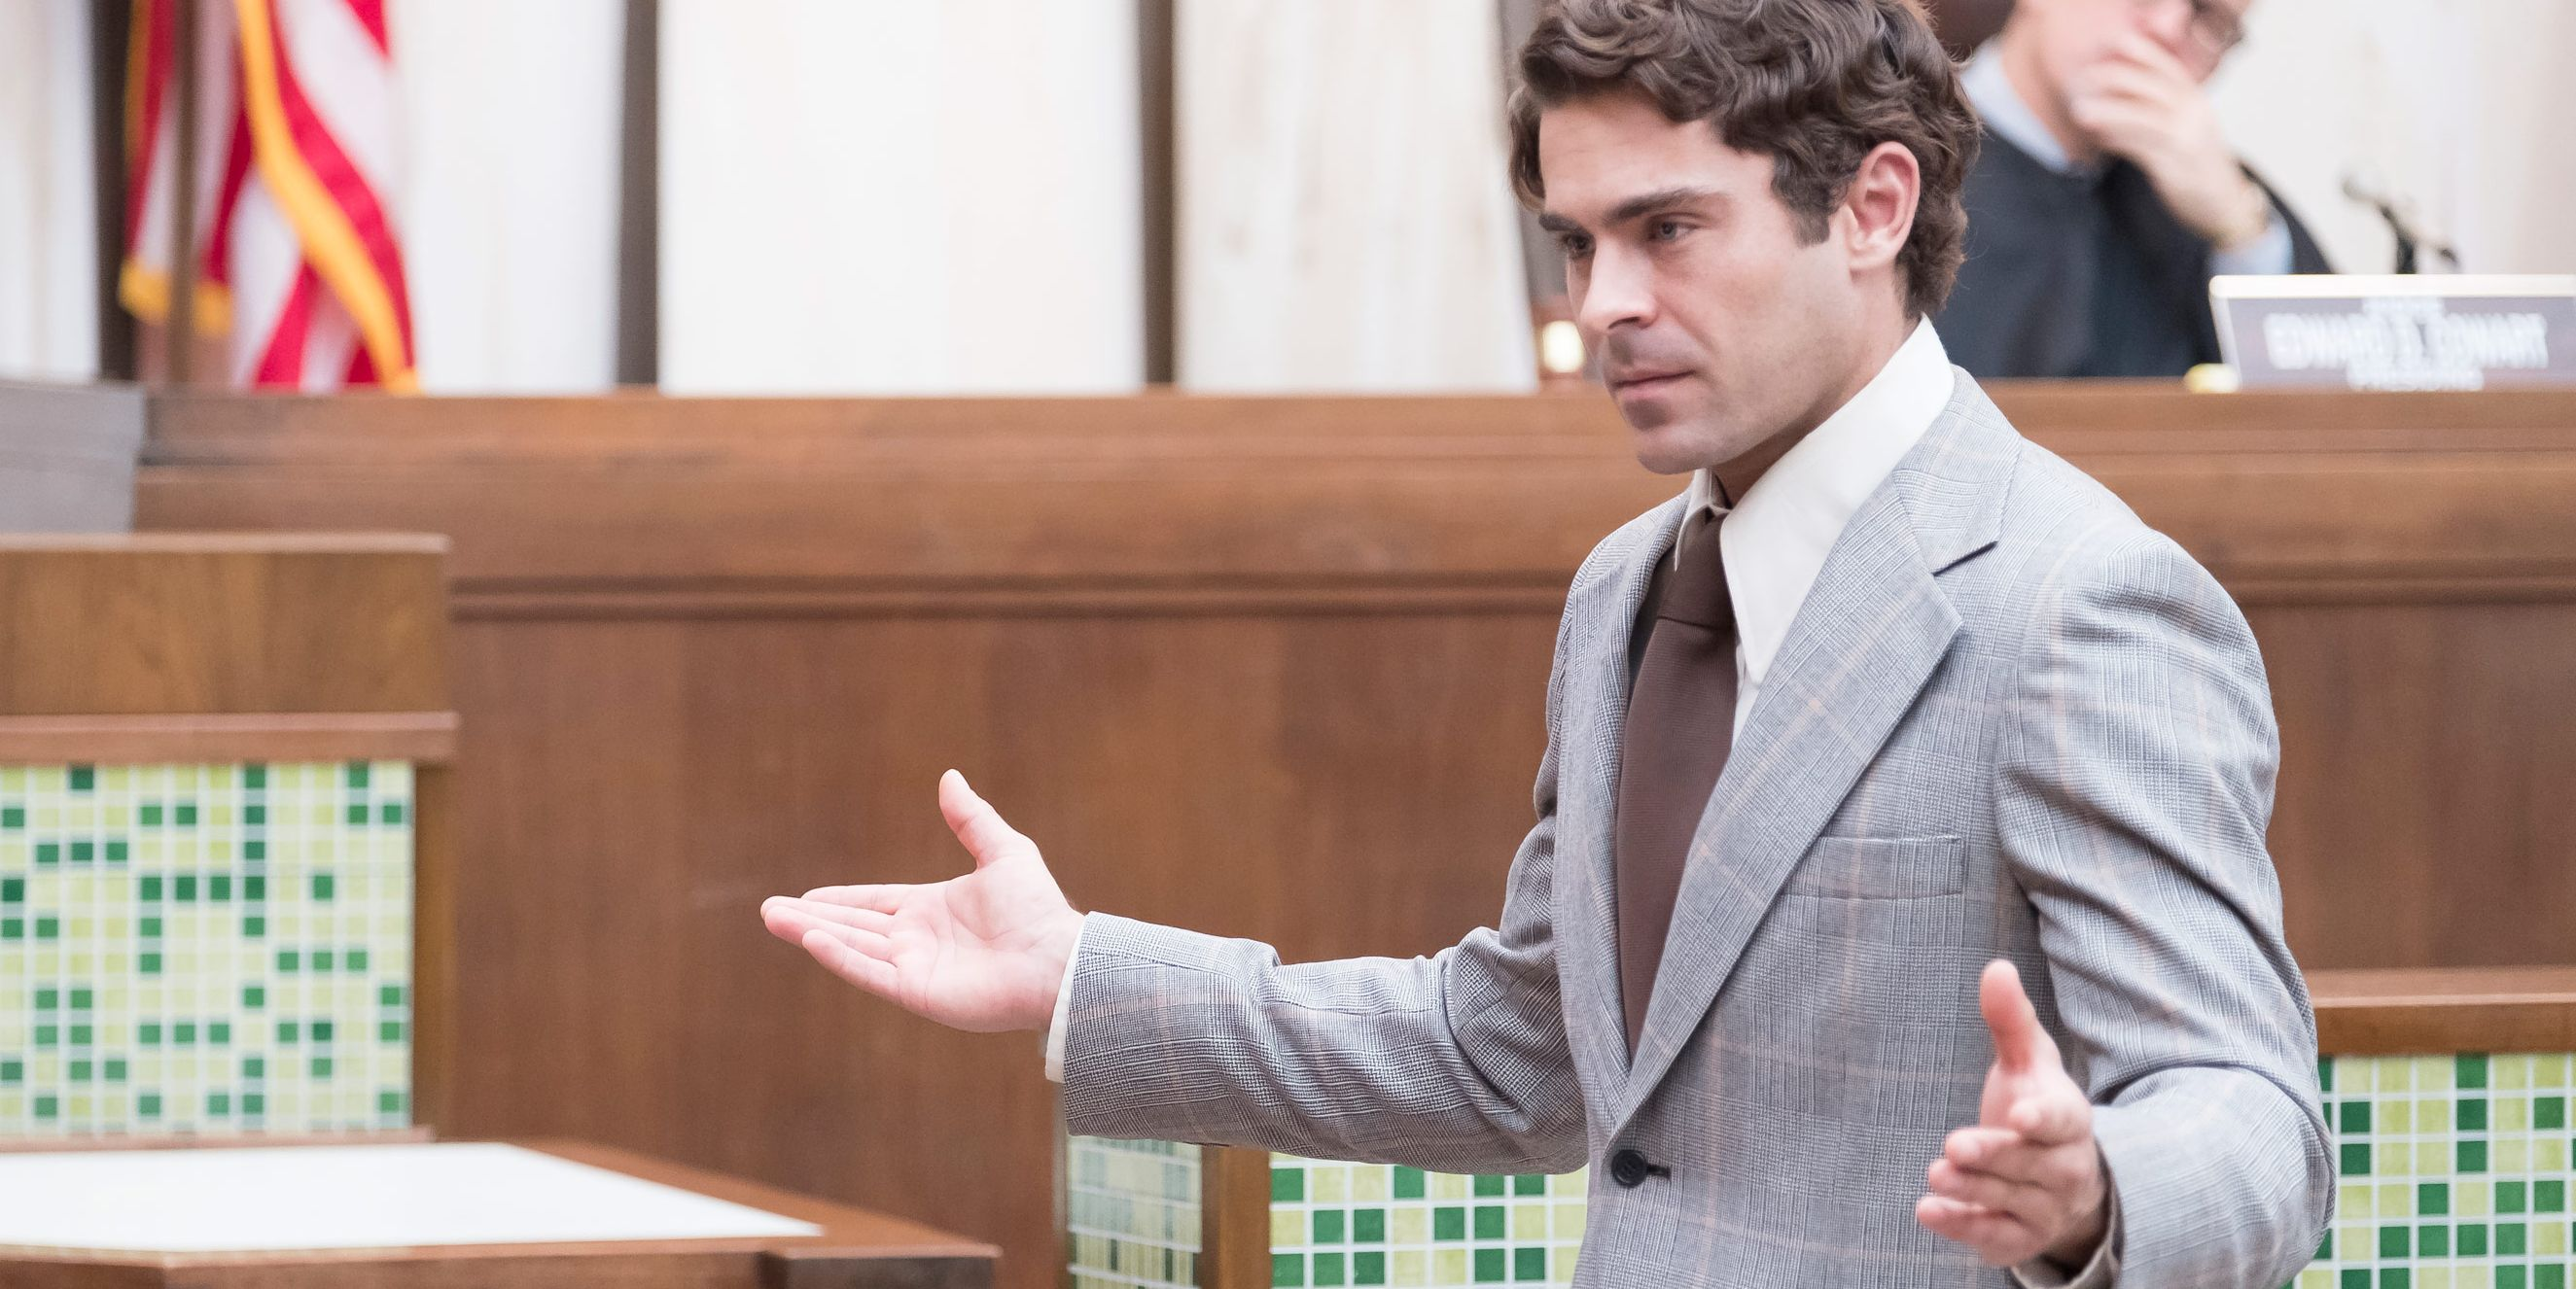 Zac Efron as Ted Bundy, Extremely Wicked Shockingly Evil and Vile